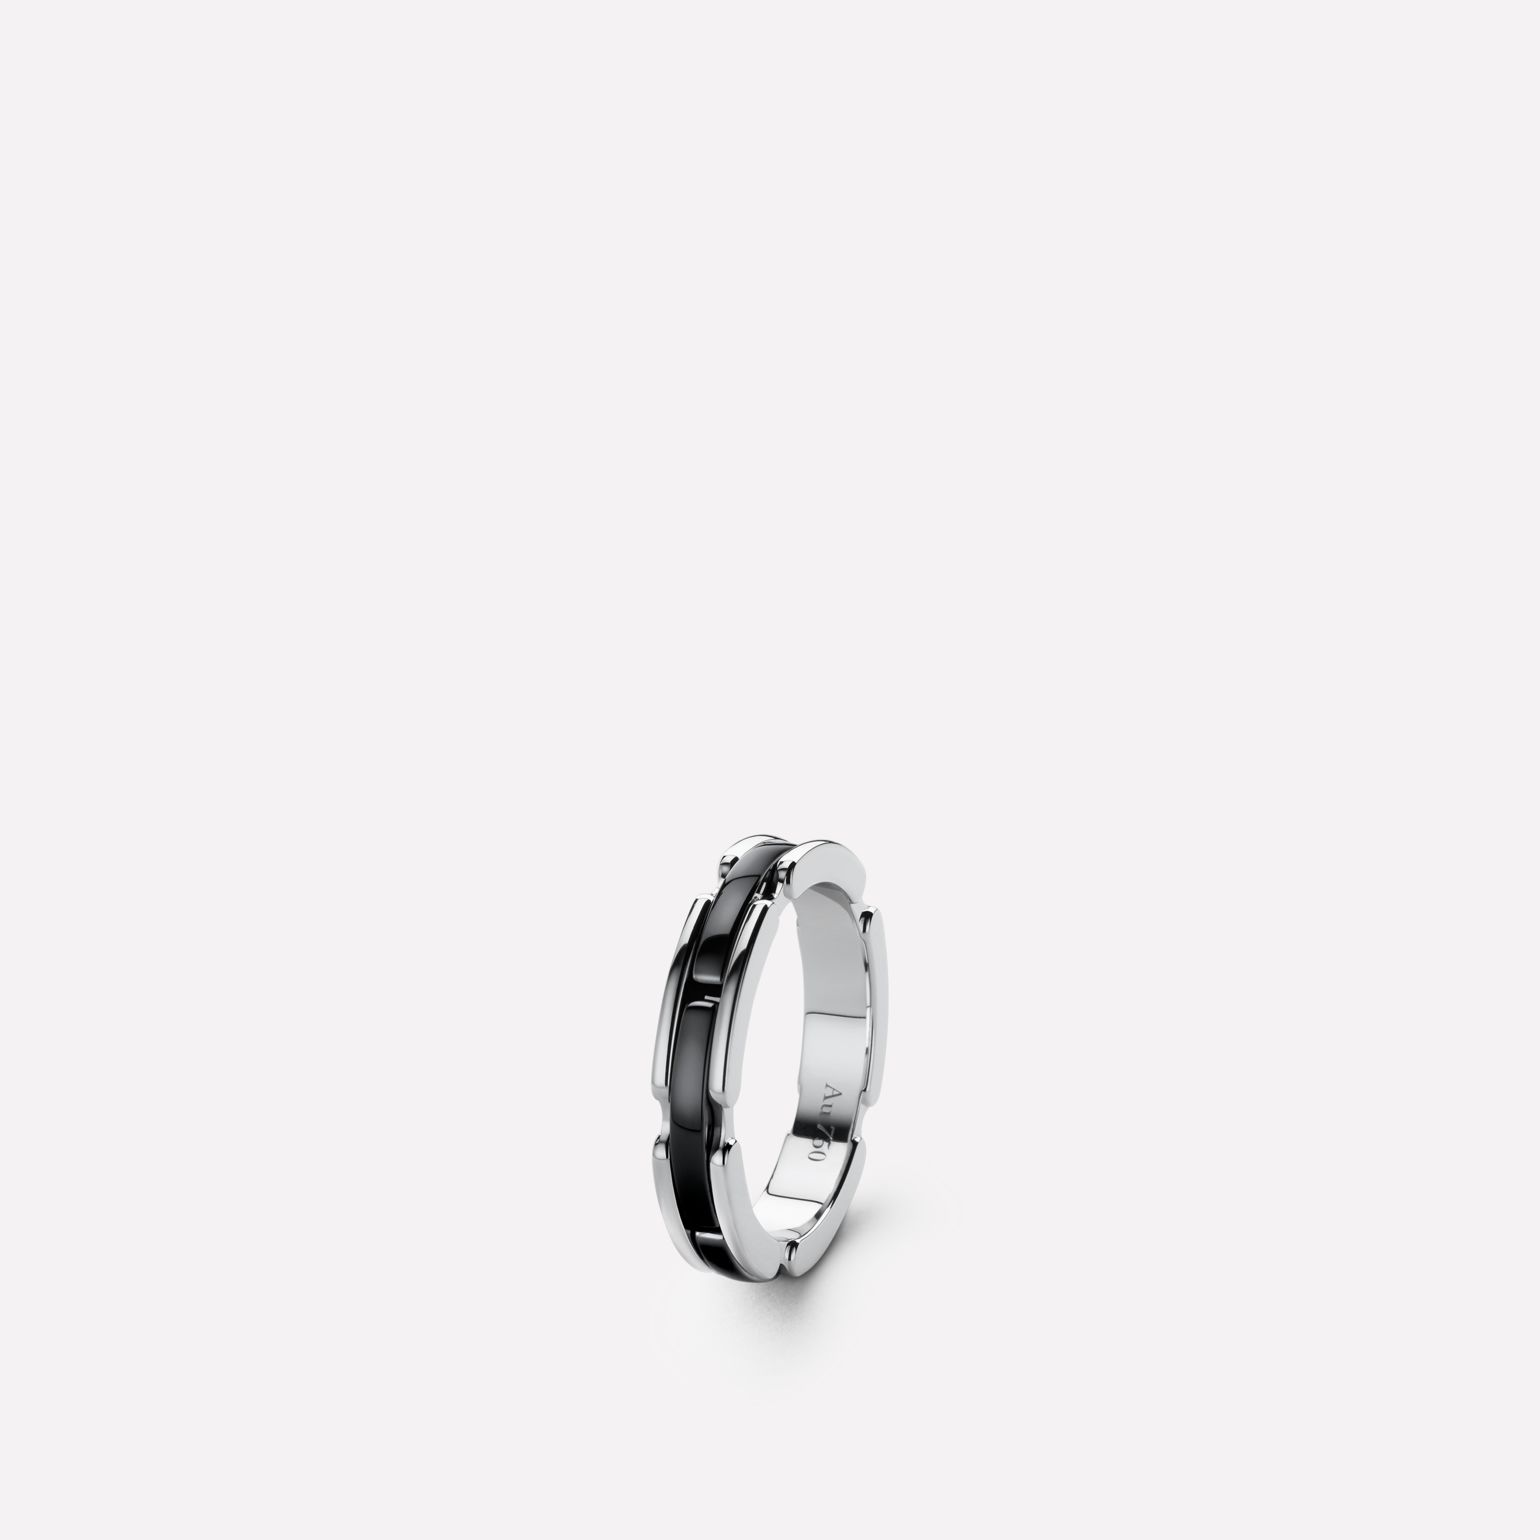 Ultra Ring Ultra ring in black ceramic and 18K white gold